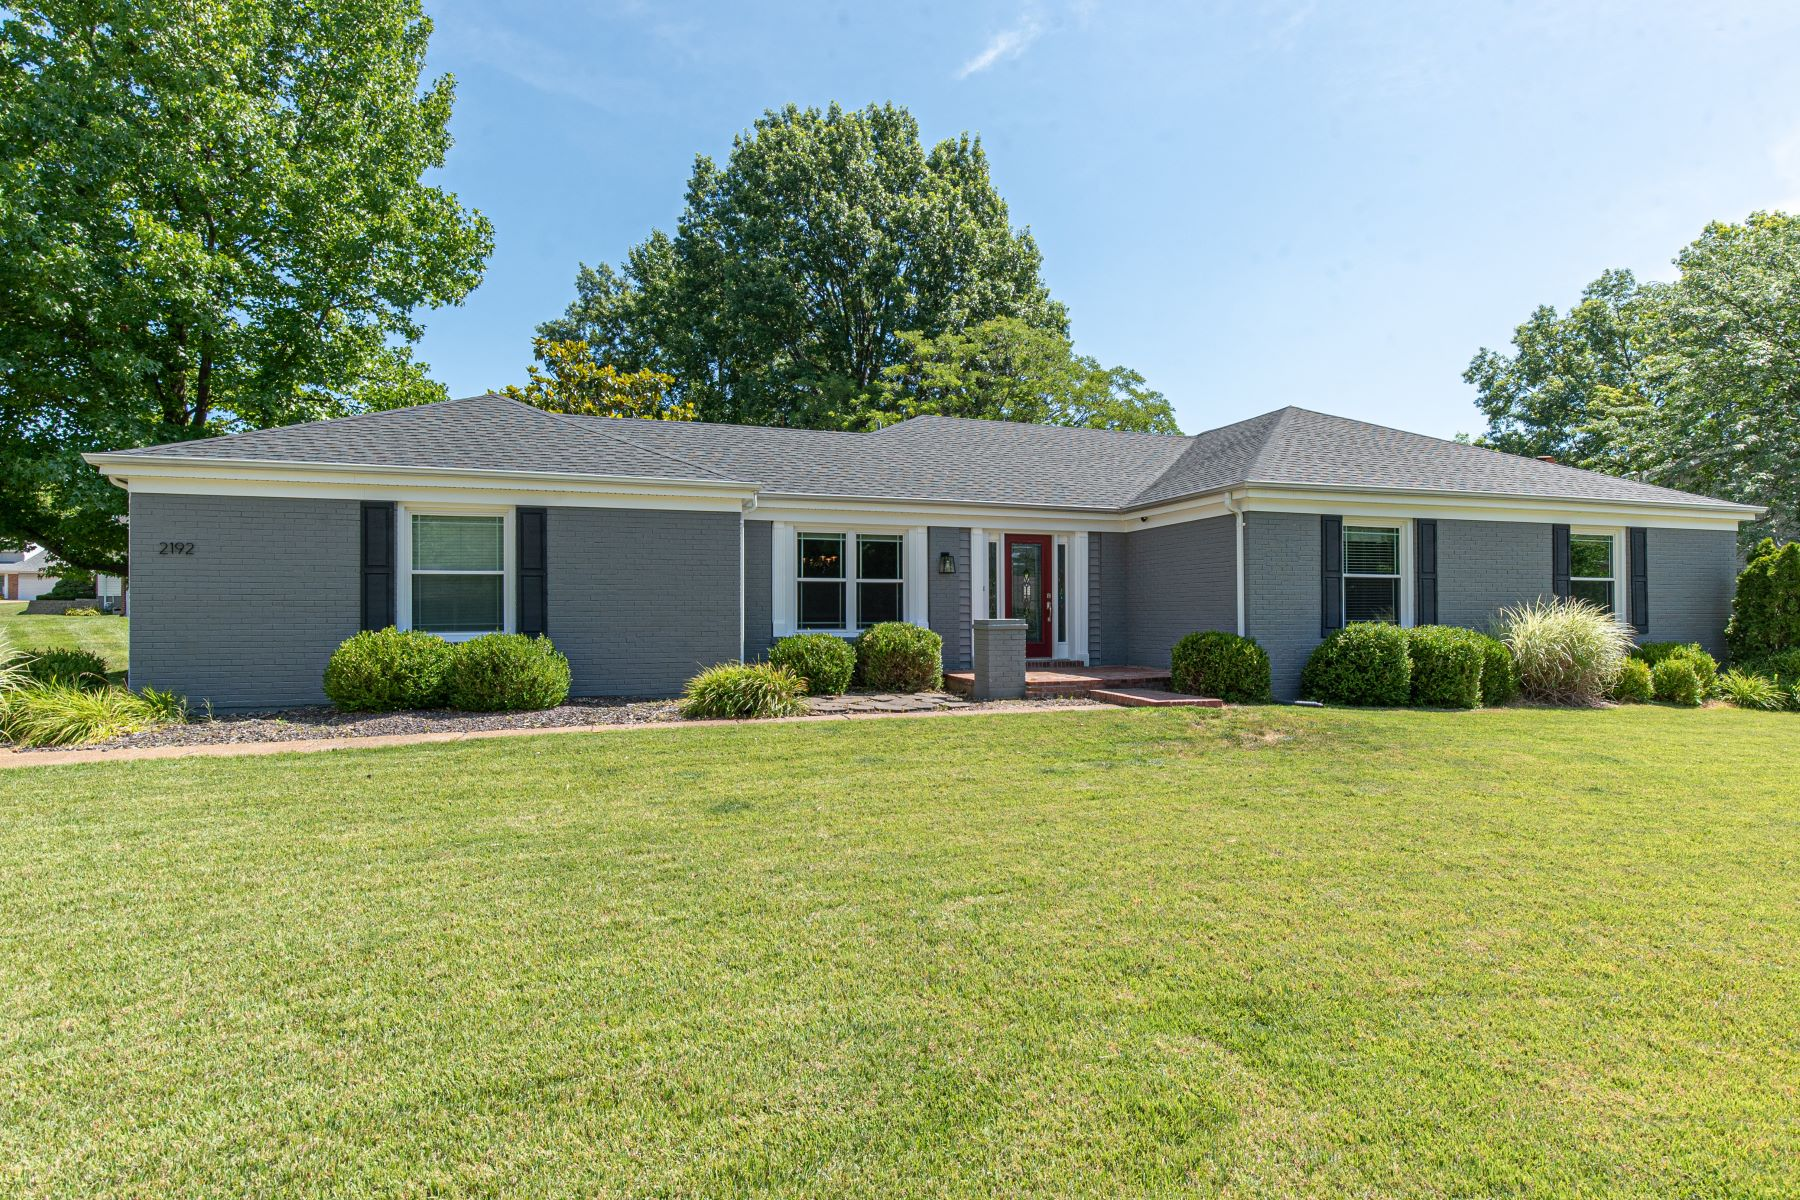 Single Family Homes for Sale at Attractive ranch home in Rockwood School District 2192 Willow Ridge Lane Chesterfield, Missouri 63017 United States